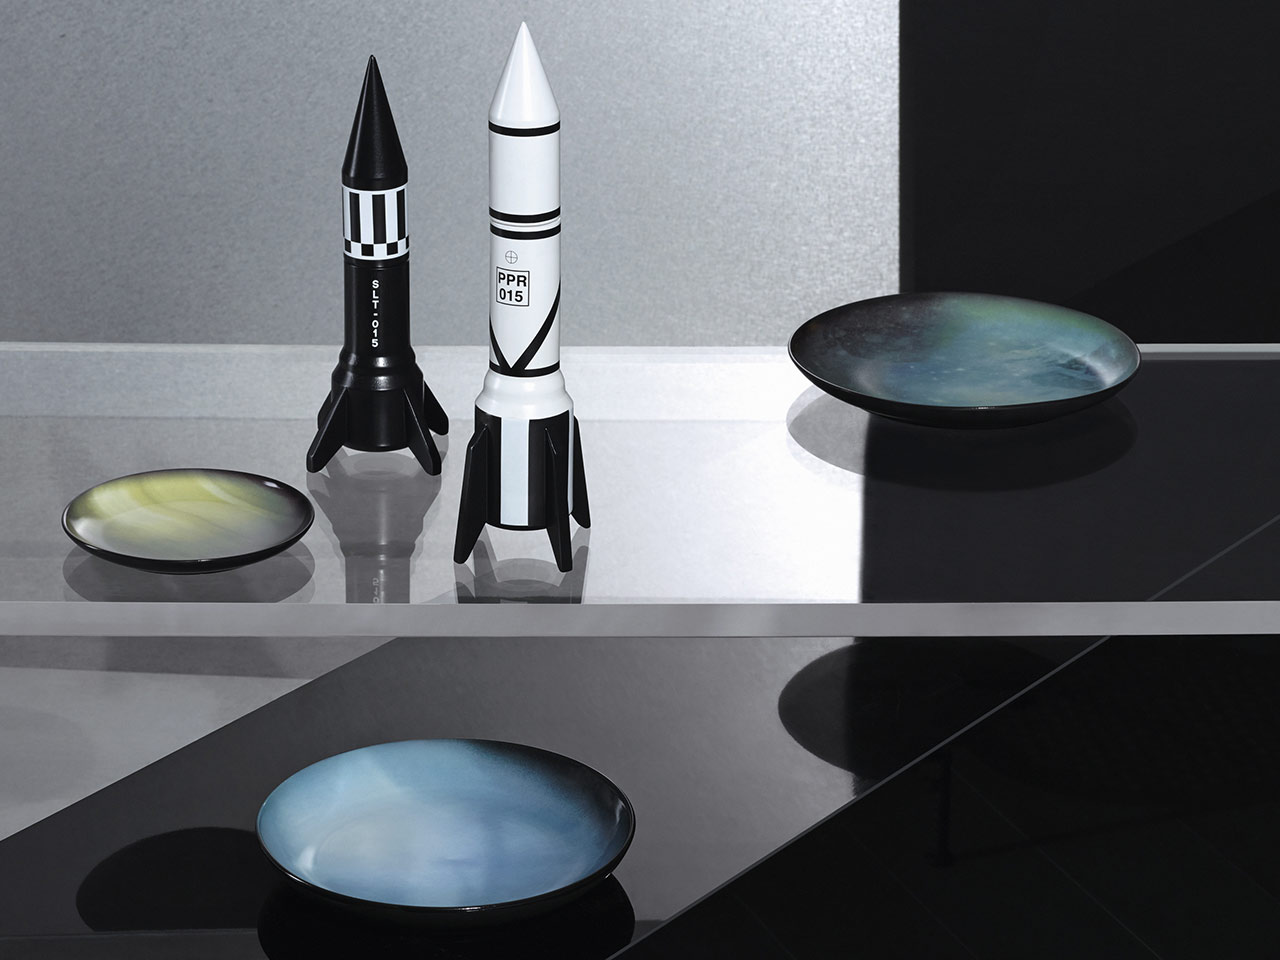 DIESEL COSMIC DINER COLLECTION